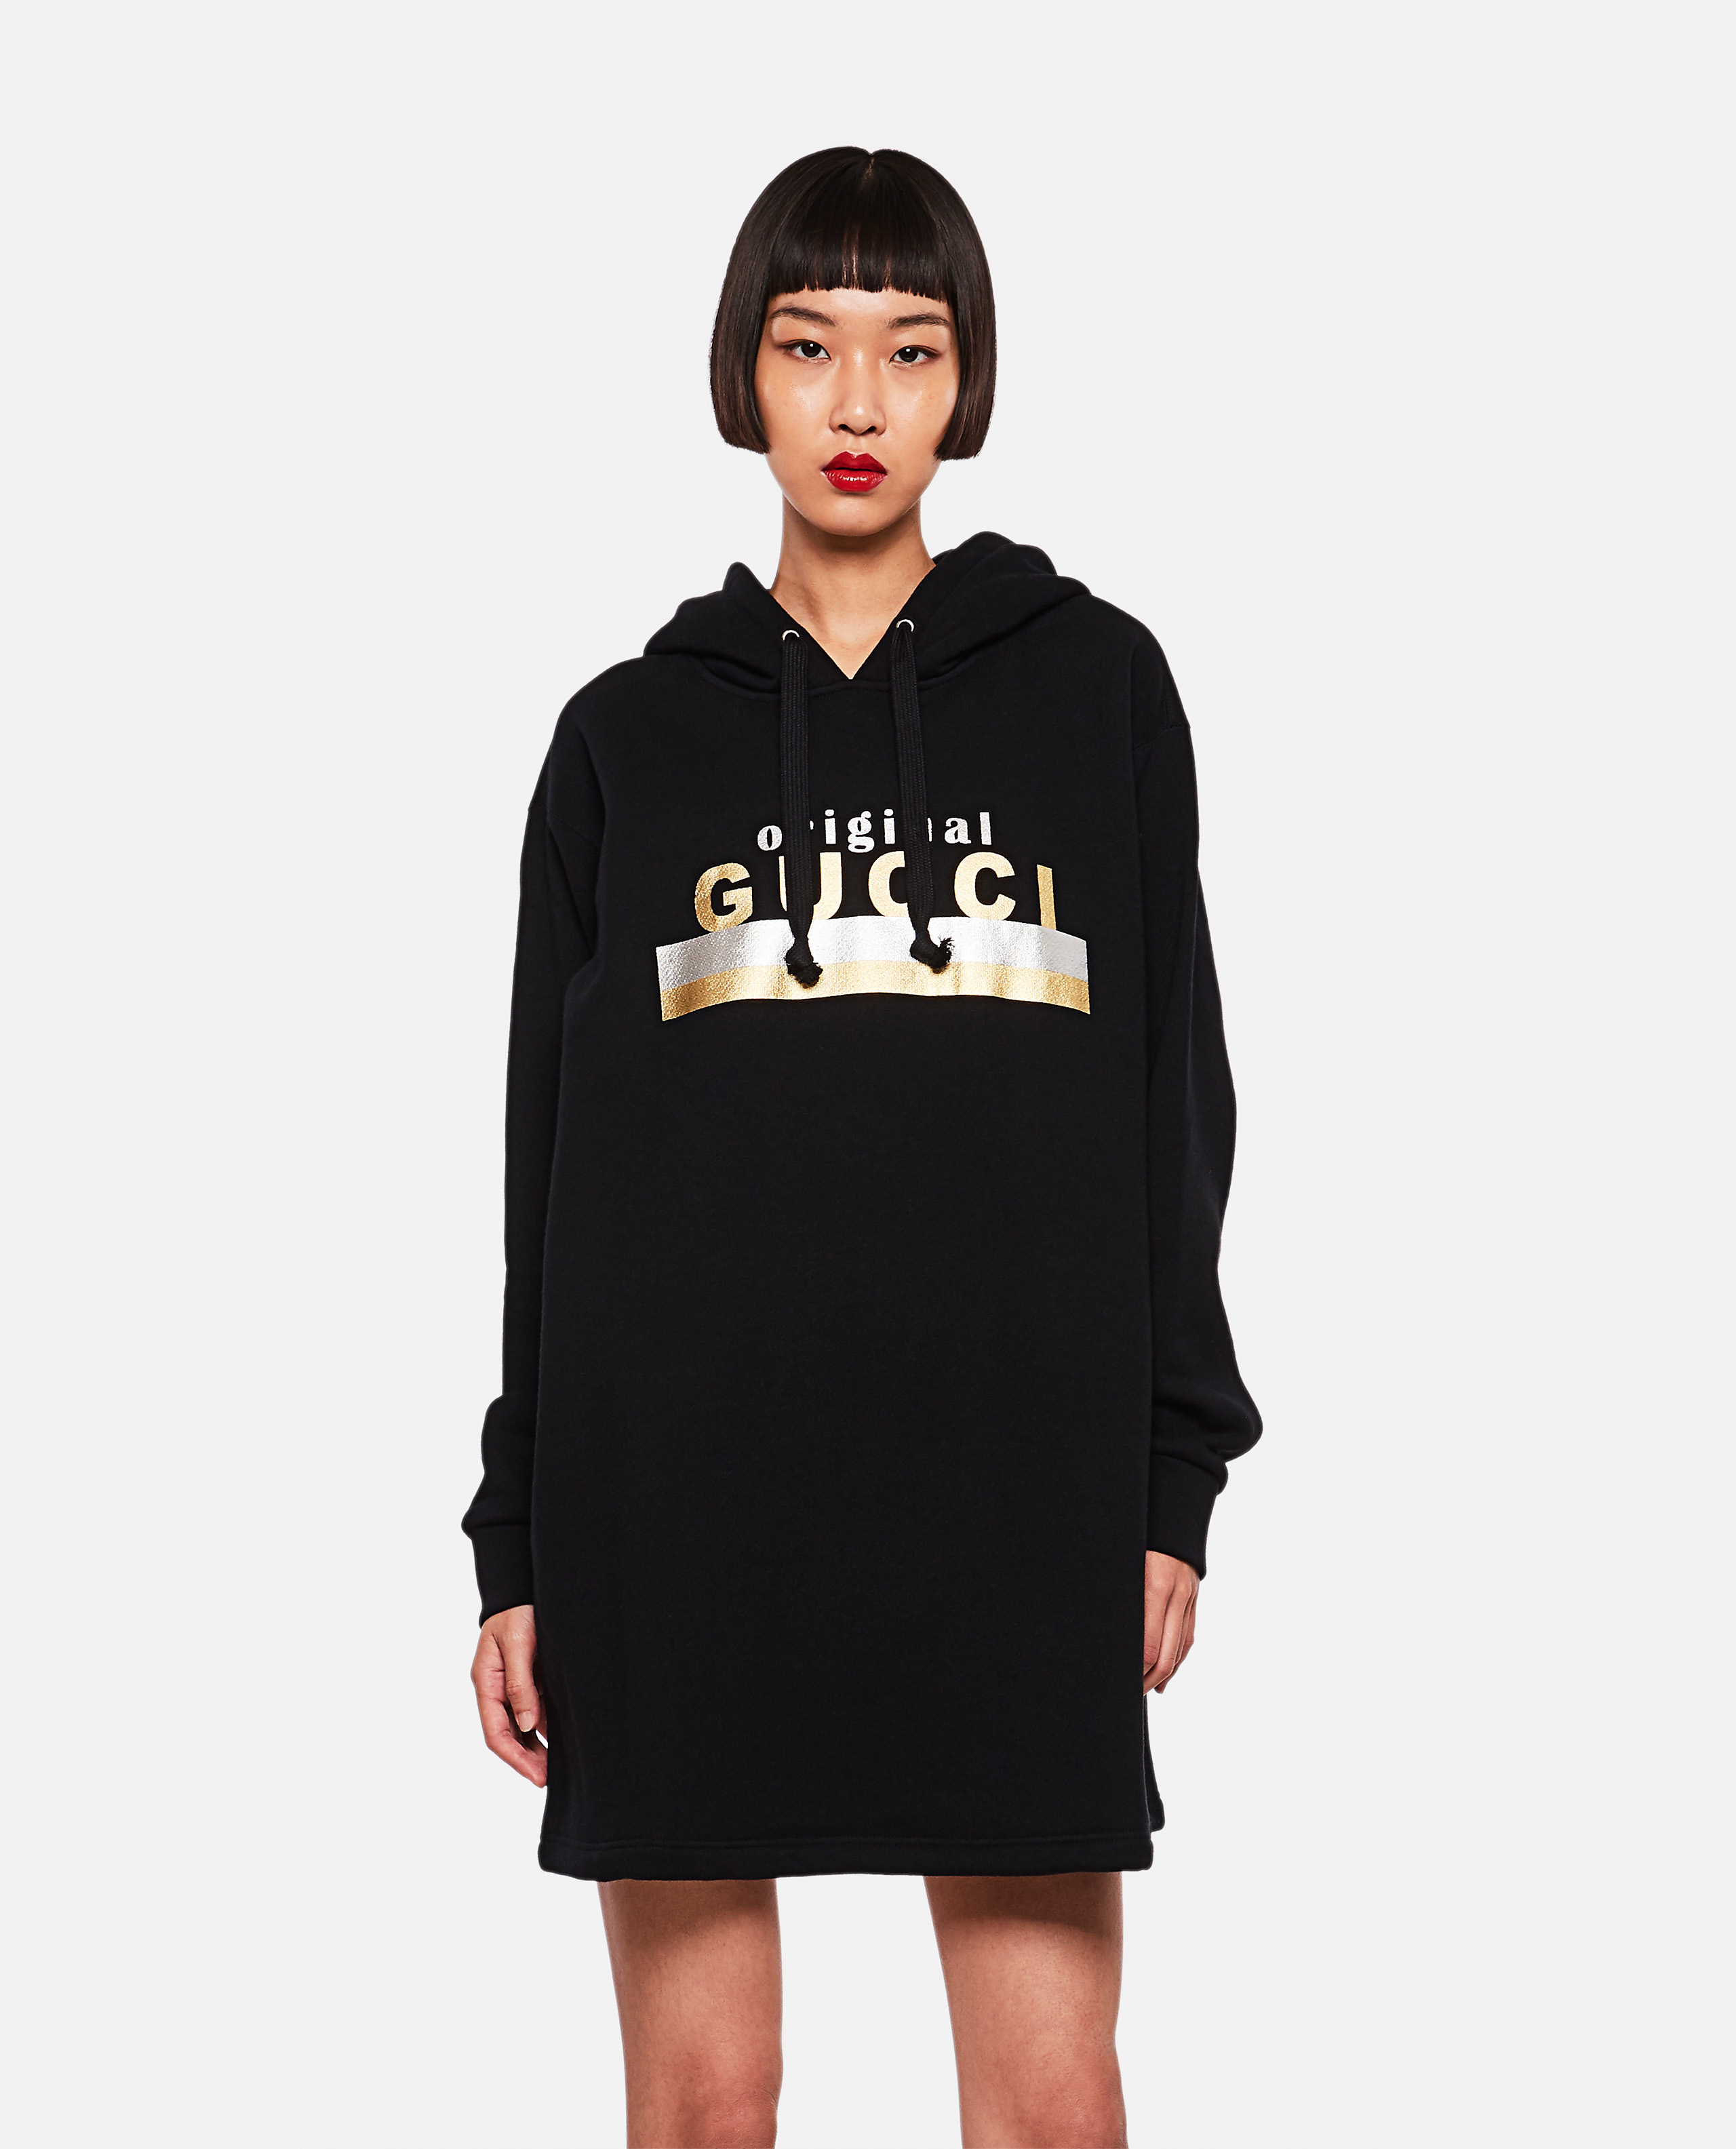 Hooded dress with Original Gucci print